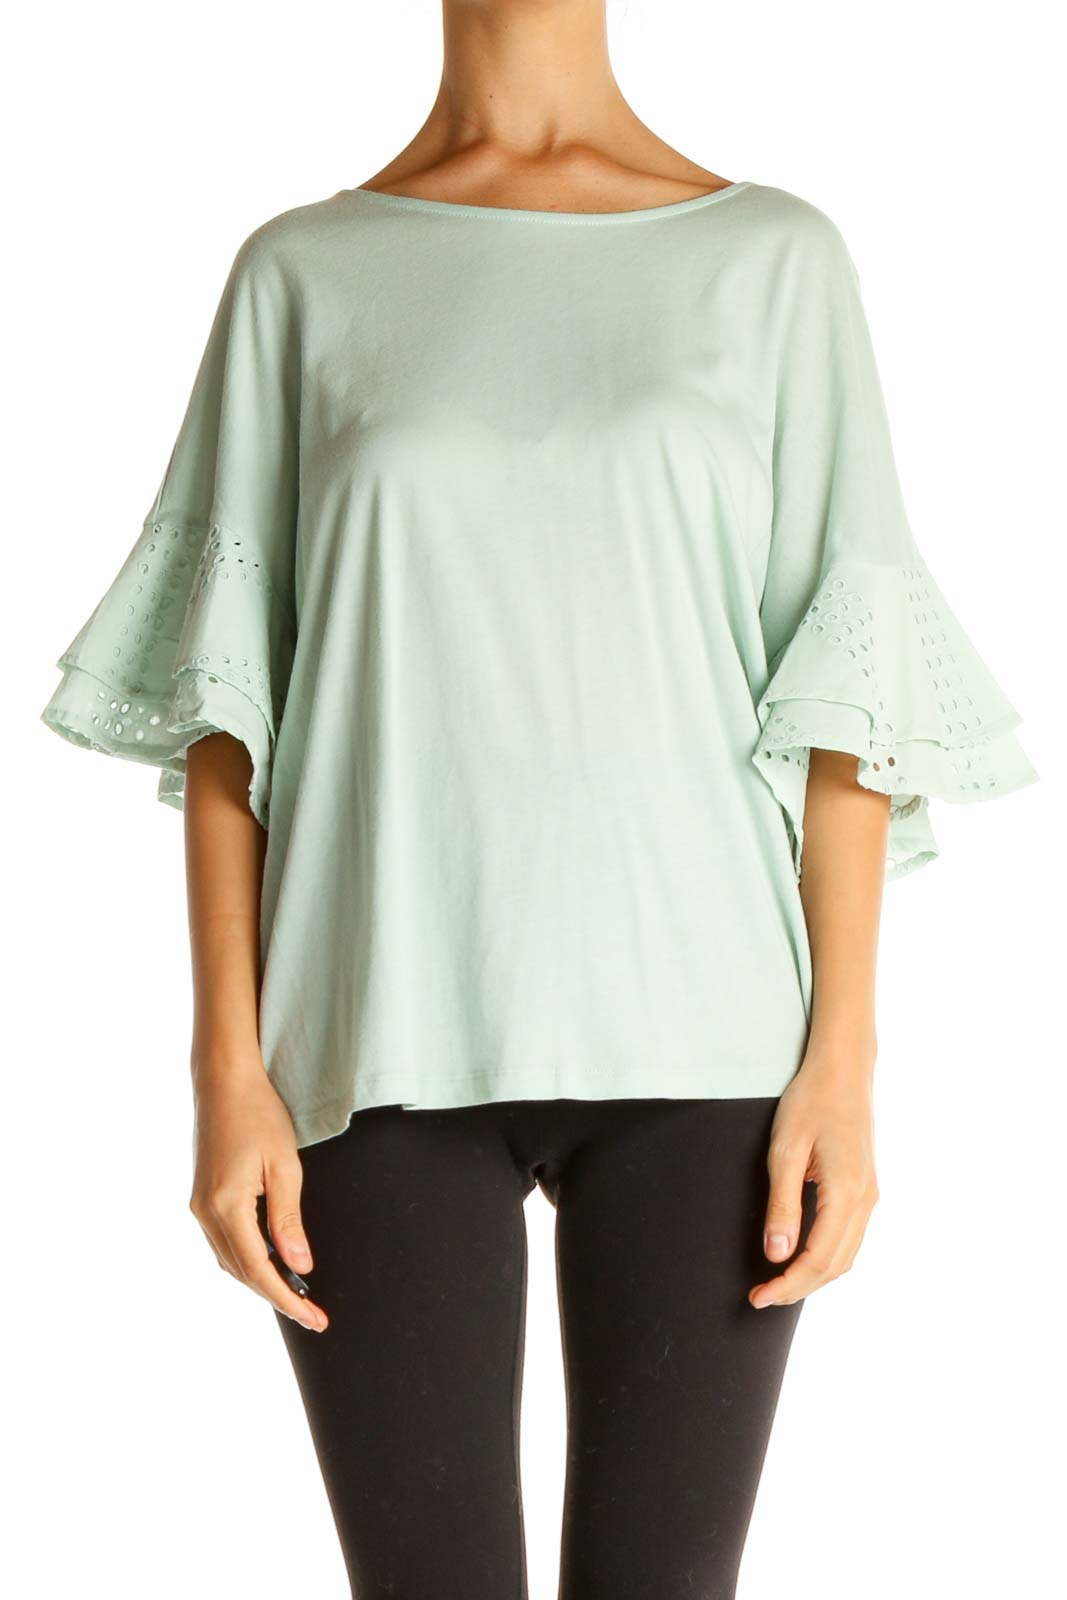 Green Solid All Day Wear Blouse Front